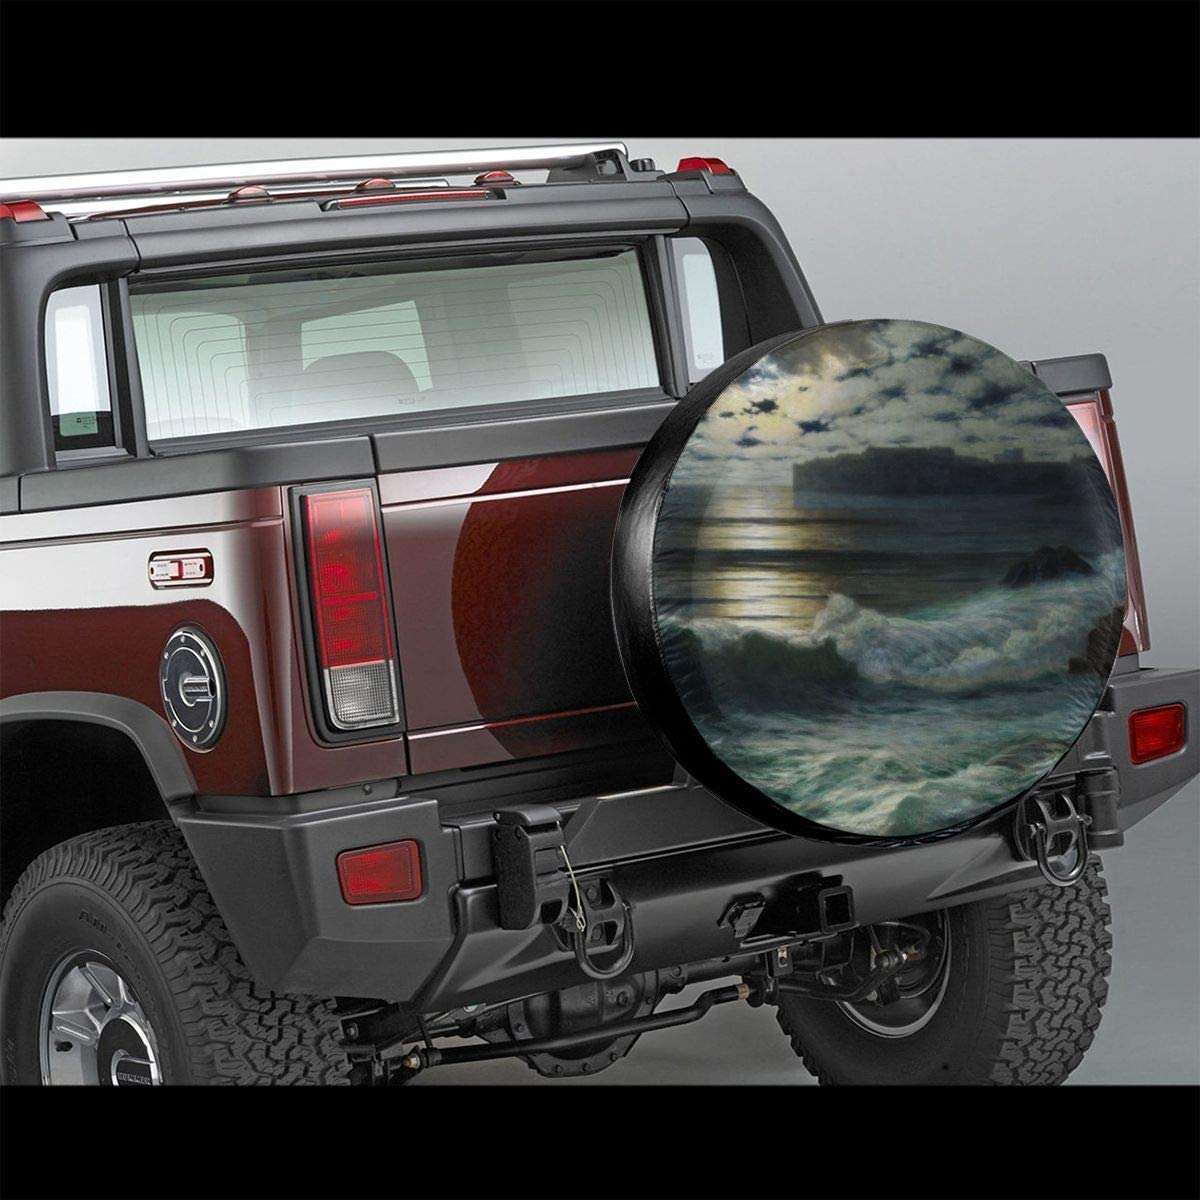 Xhayo Sea in The Dark Wheel Cover Wheelcover Spare Tyre Tire for SUV,RV,Trailer,Truck Wheel Fits Entire Wheel